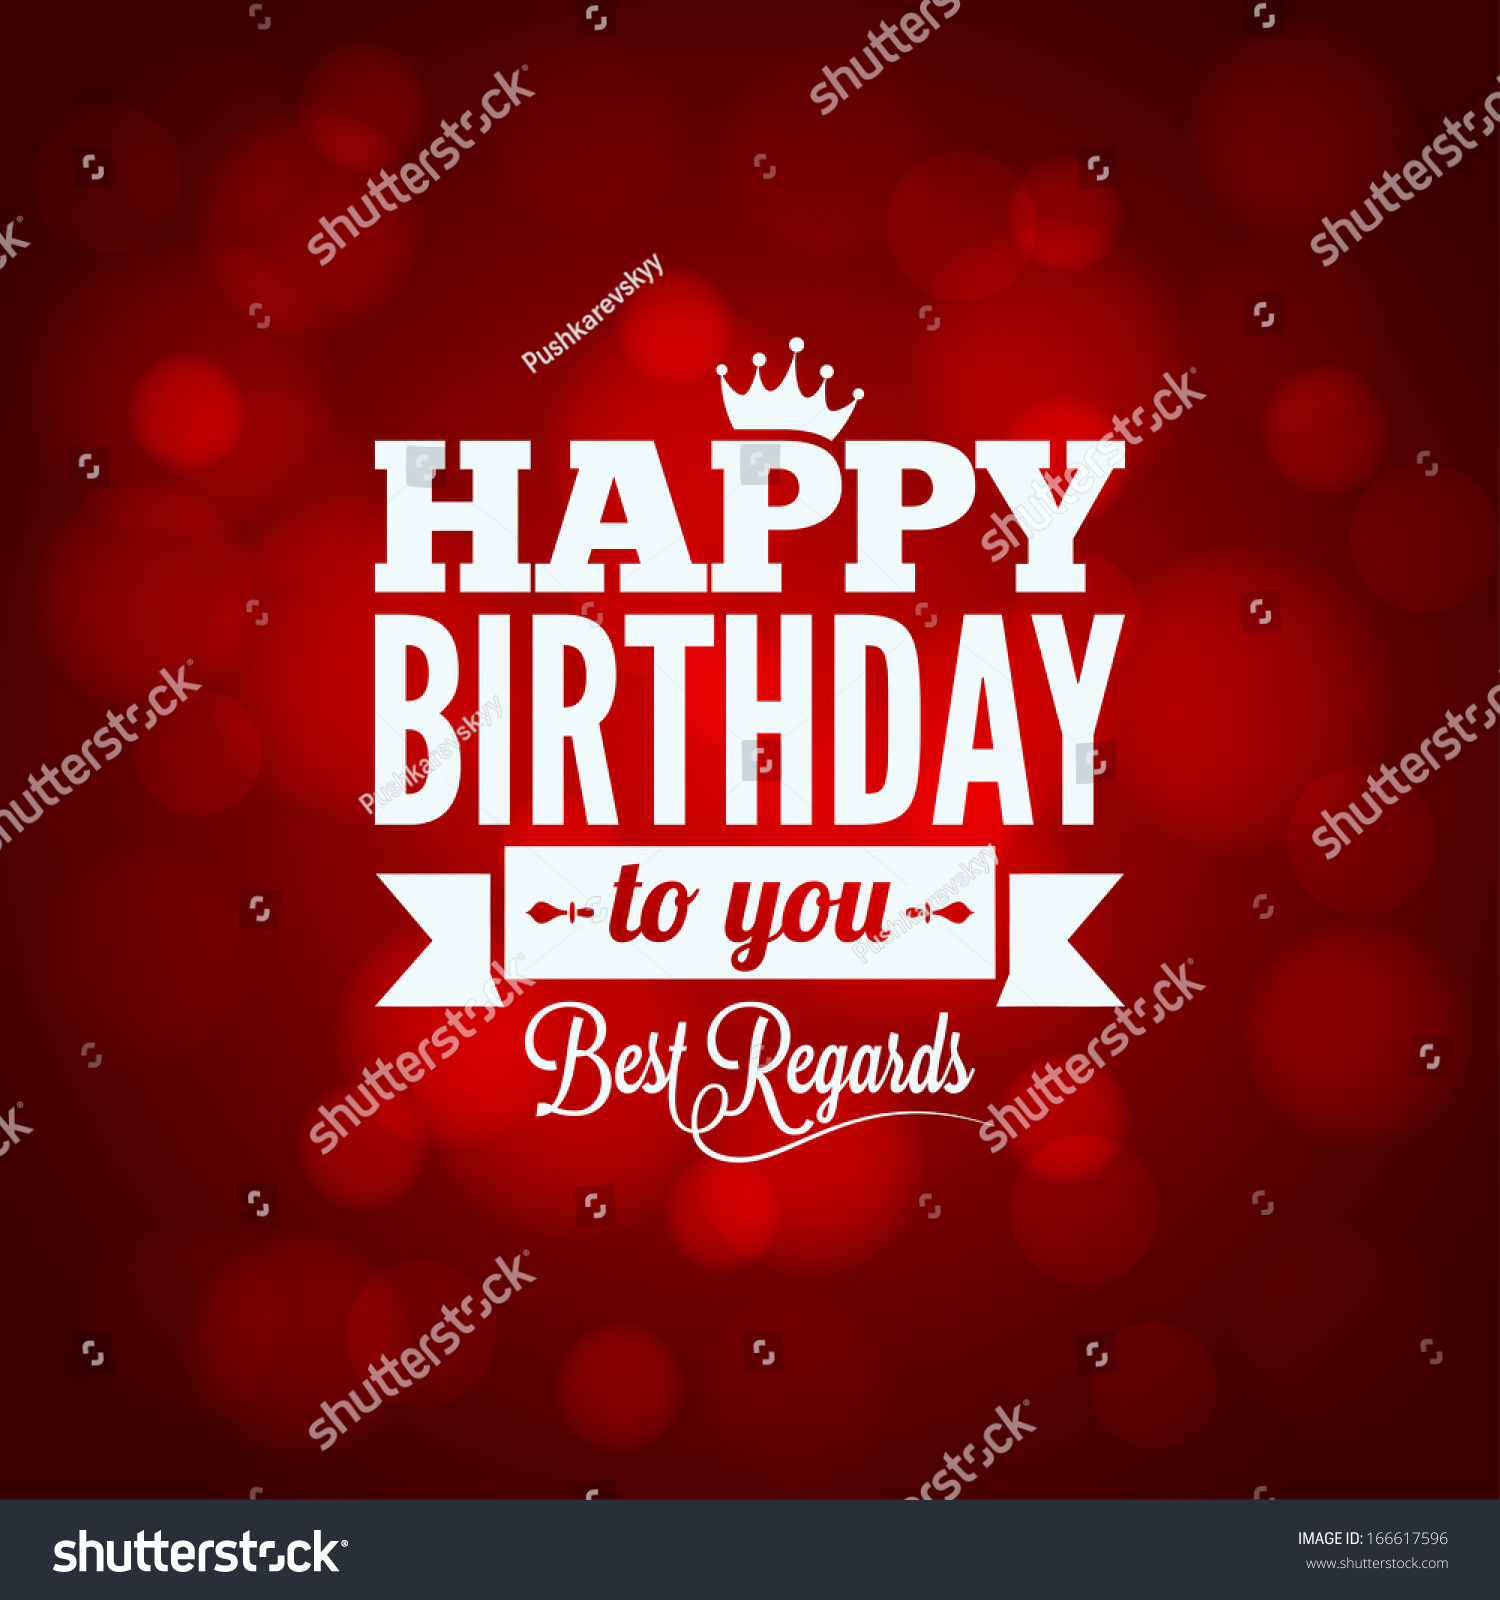 happy birthday sign design background stock vector 166617596 shutterstock. Black Bedroom Furniture Sets. Home Design Ideas